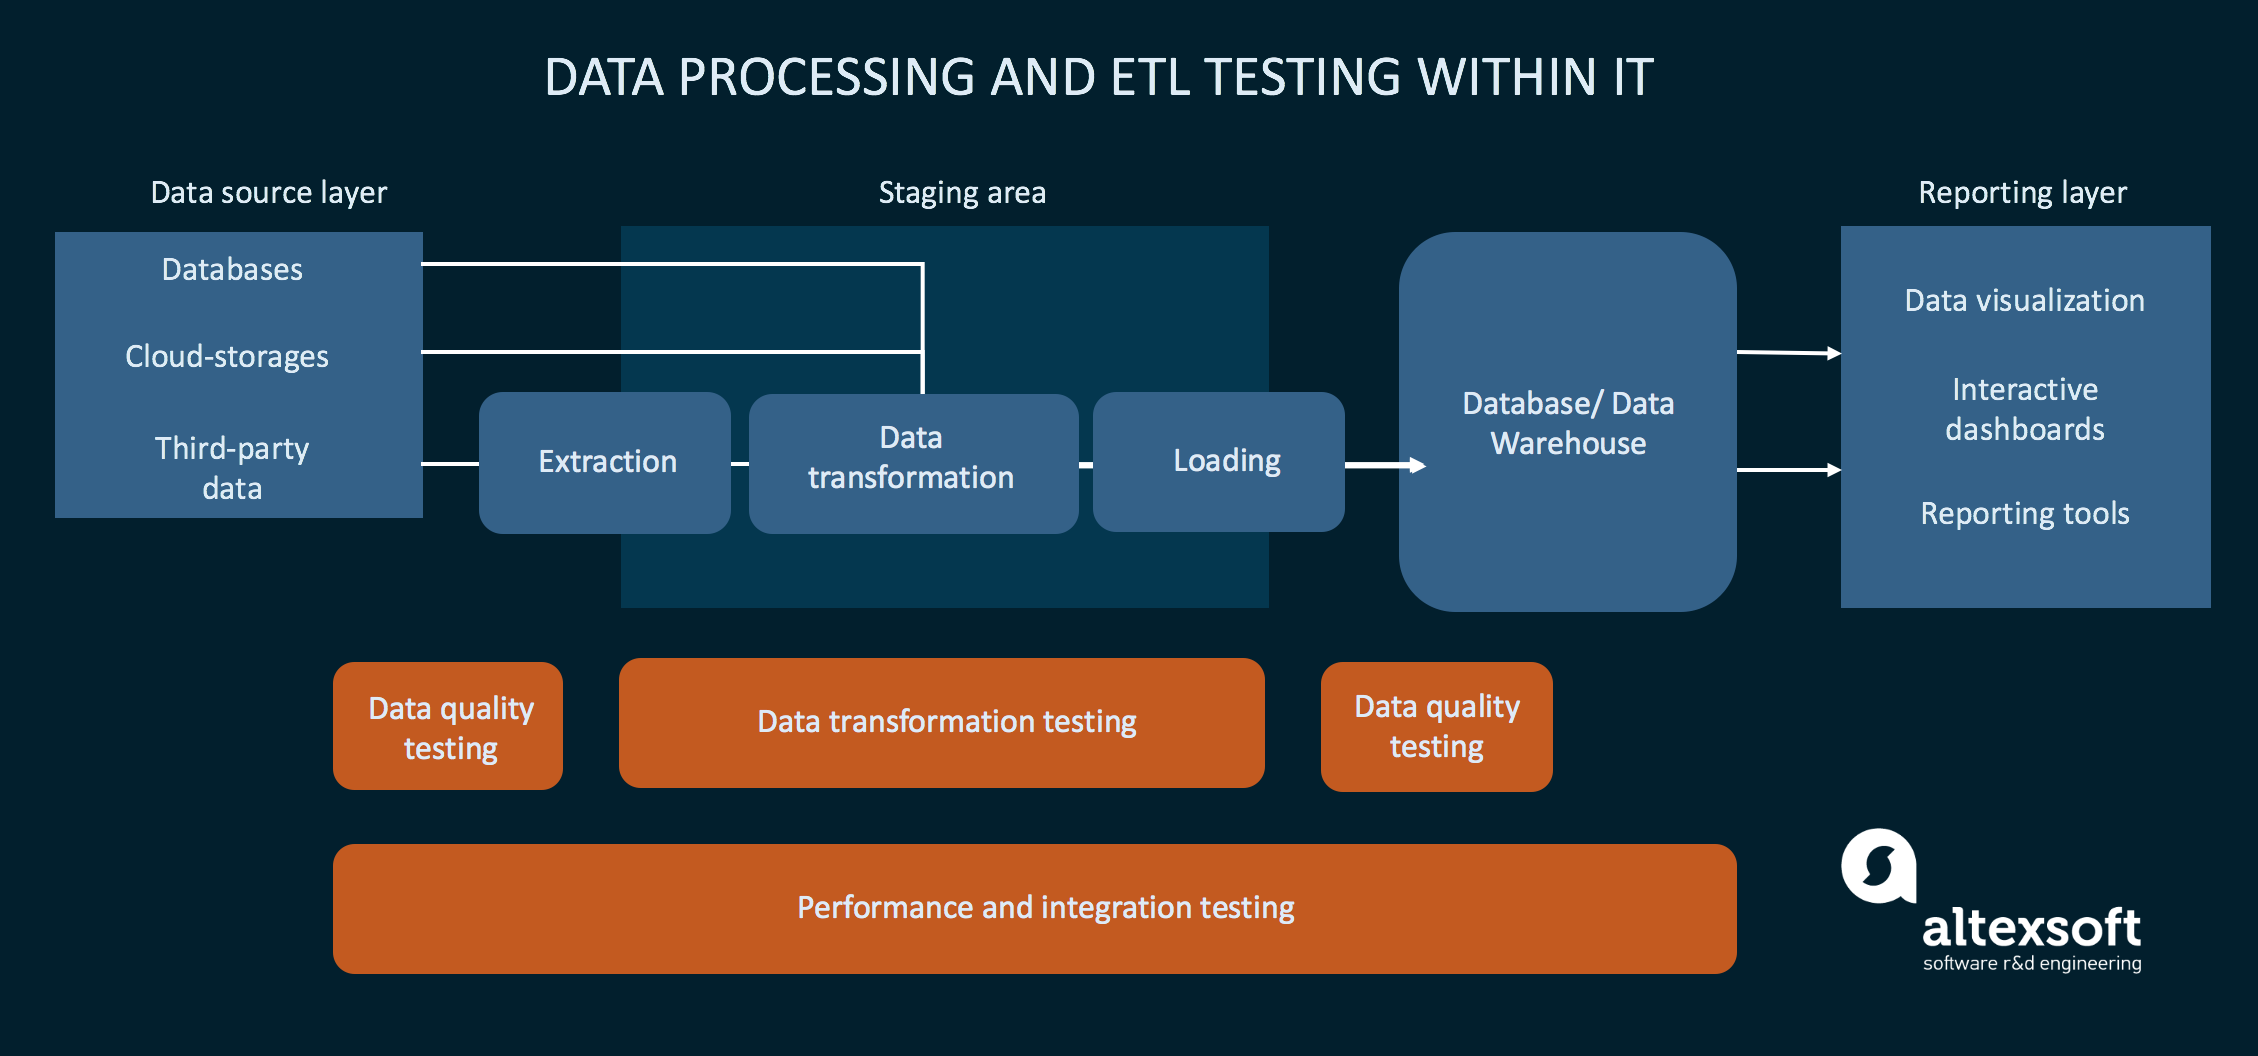 Testing operations within the ETL workflow